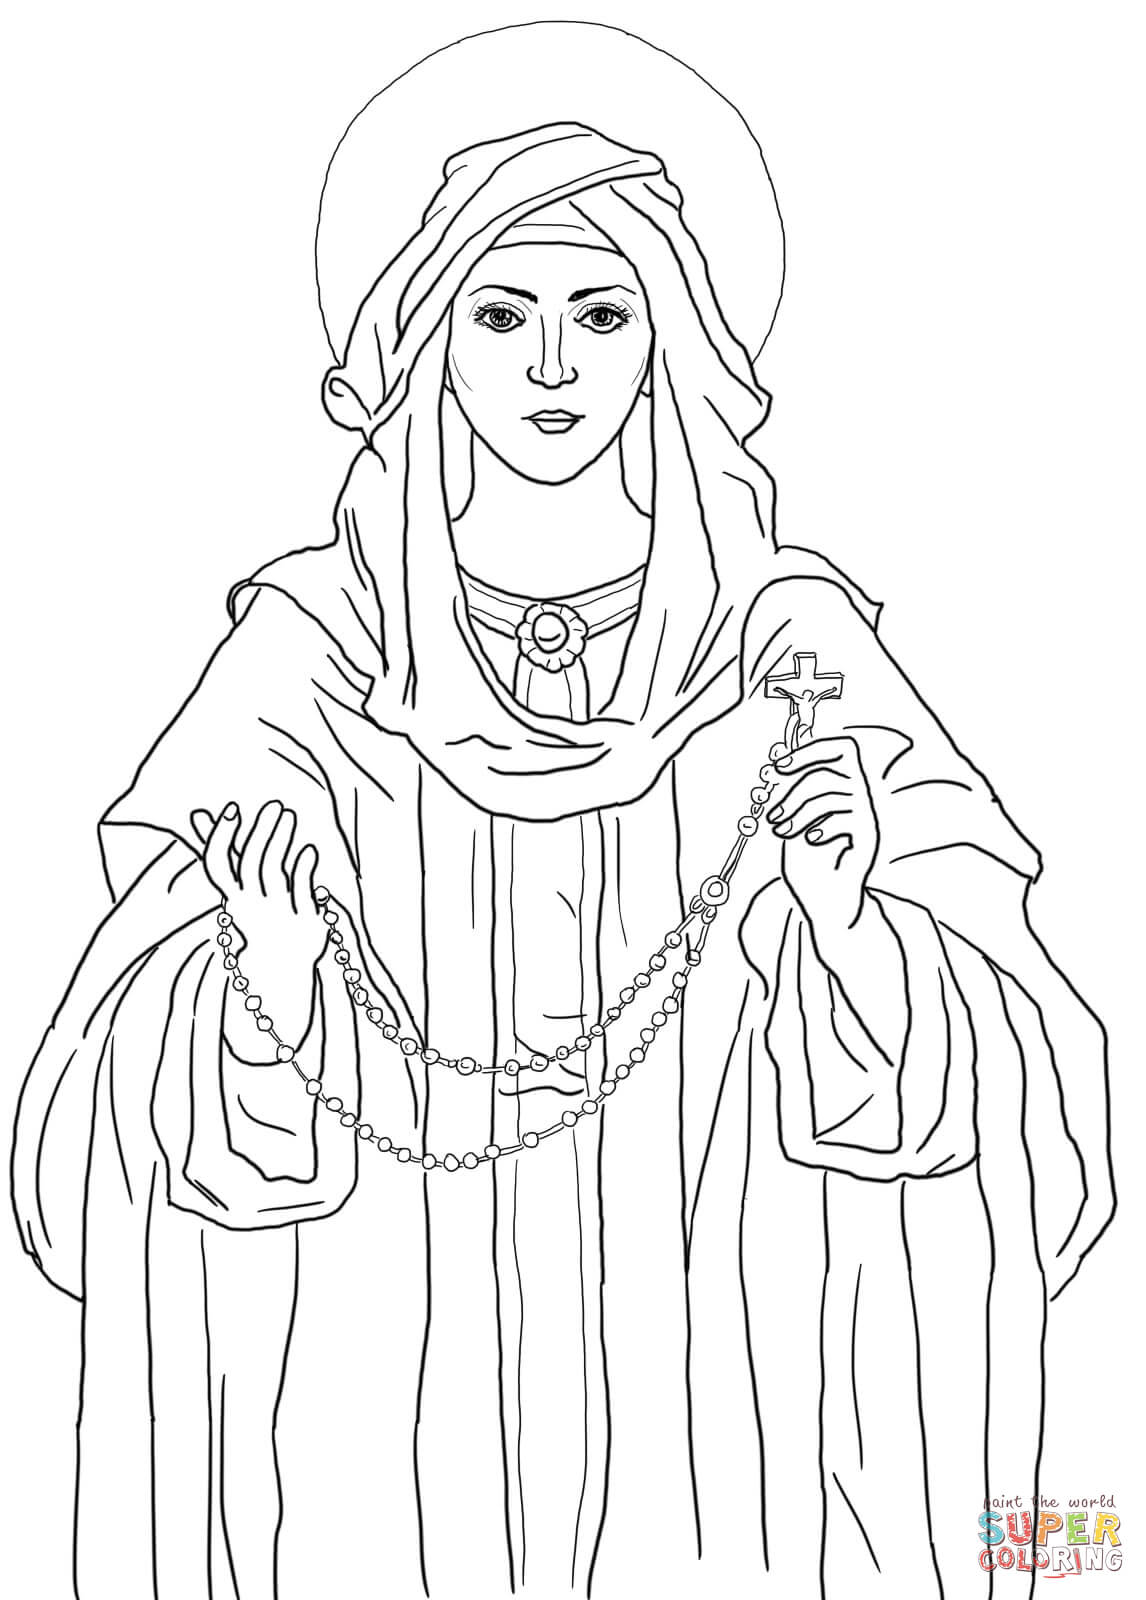 Our Lady of the Rosary coloring page | Free Printable Coloring Pages